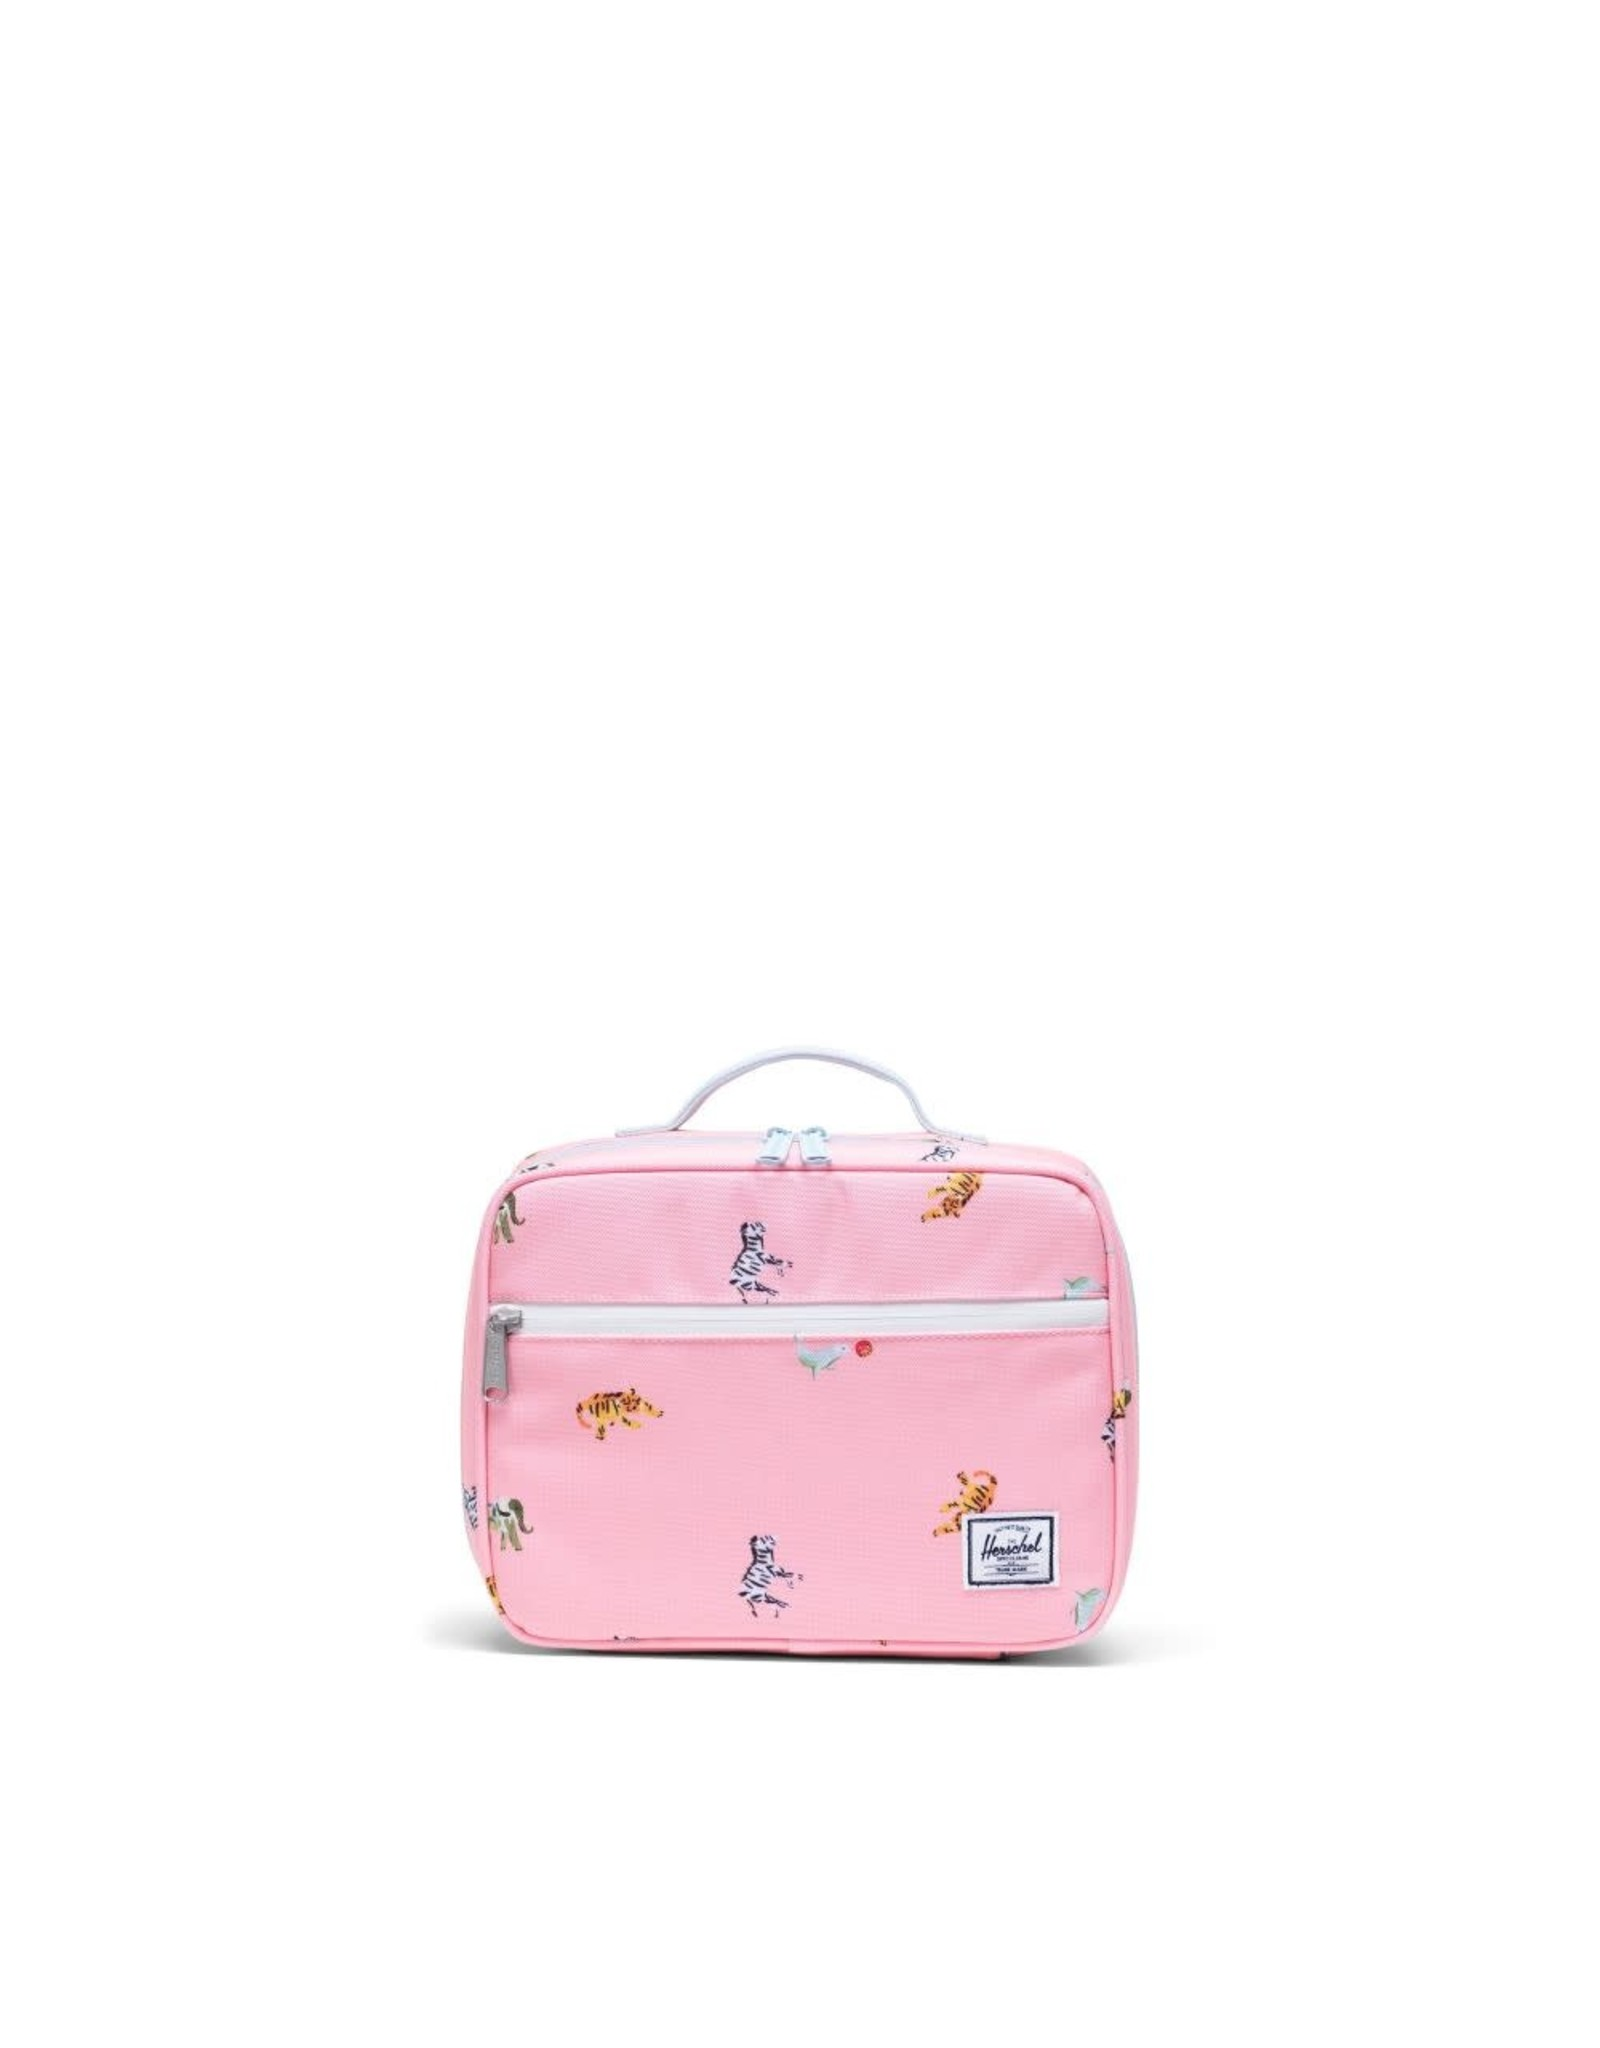 herschel Herschel - Boîte à lunch pop quiz candy pink circus animals